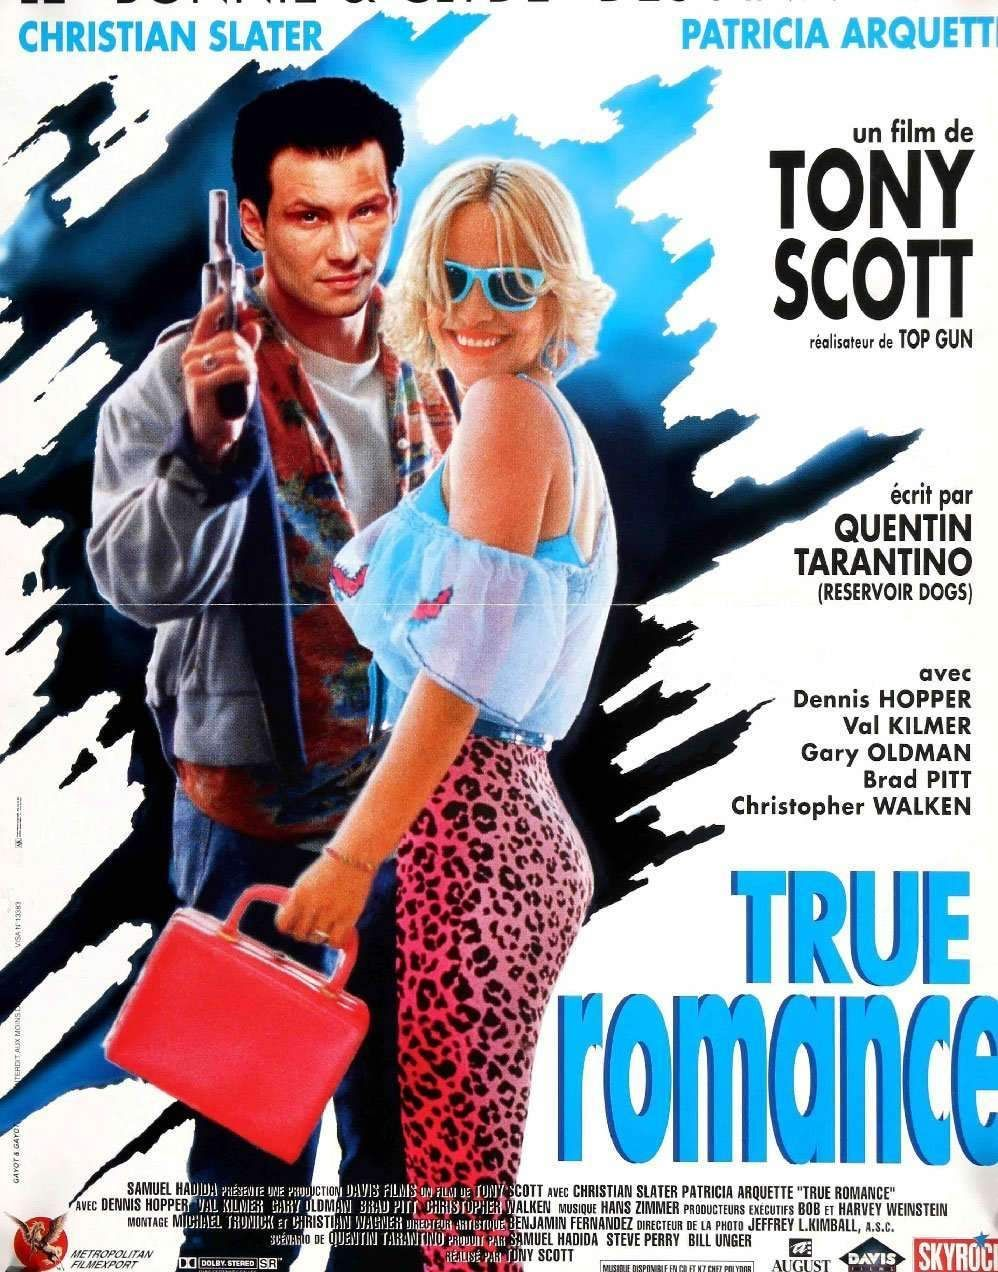 True Romance (1993) (With images) Romance movie poster